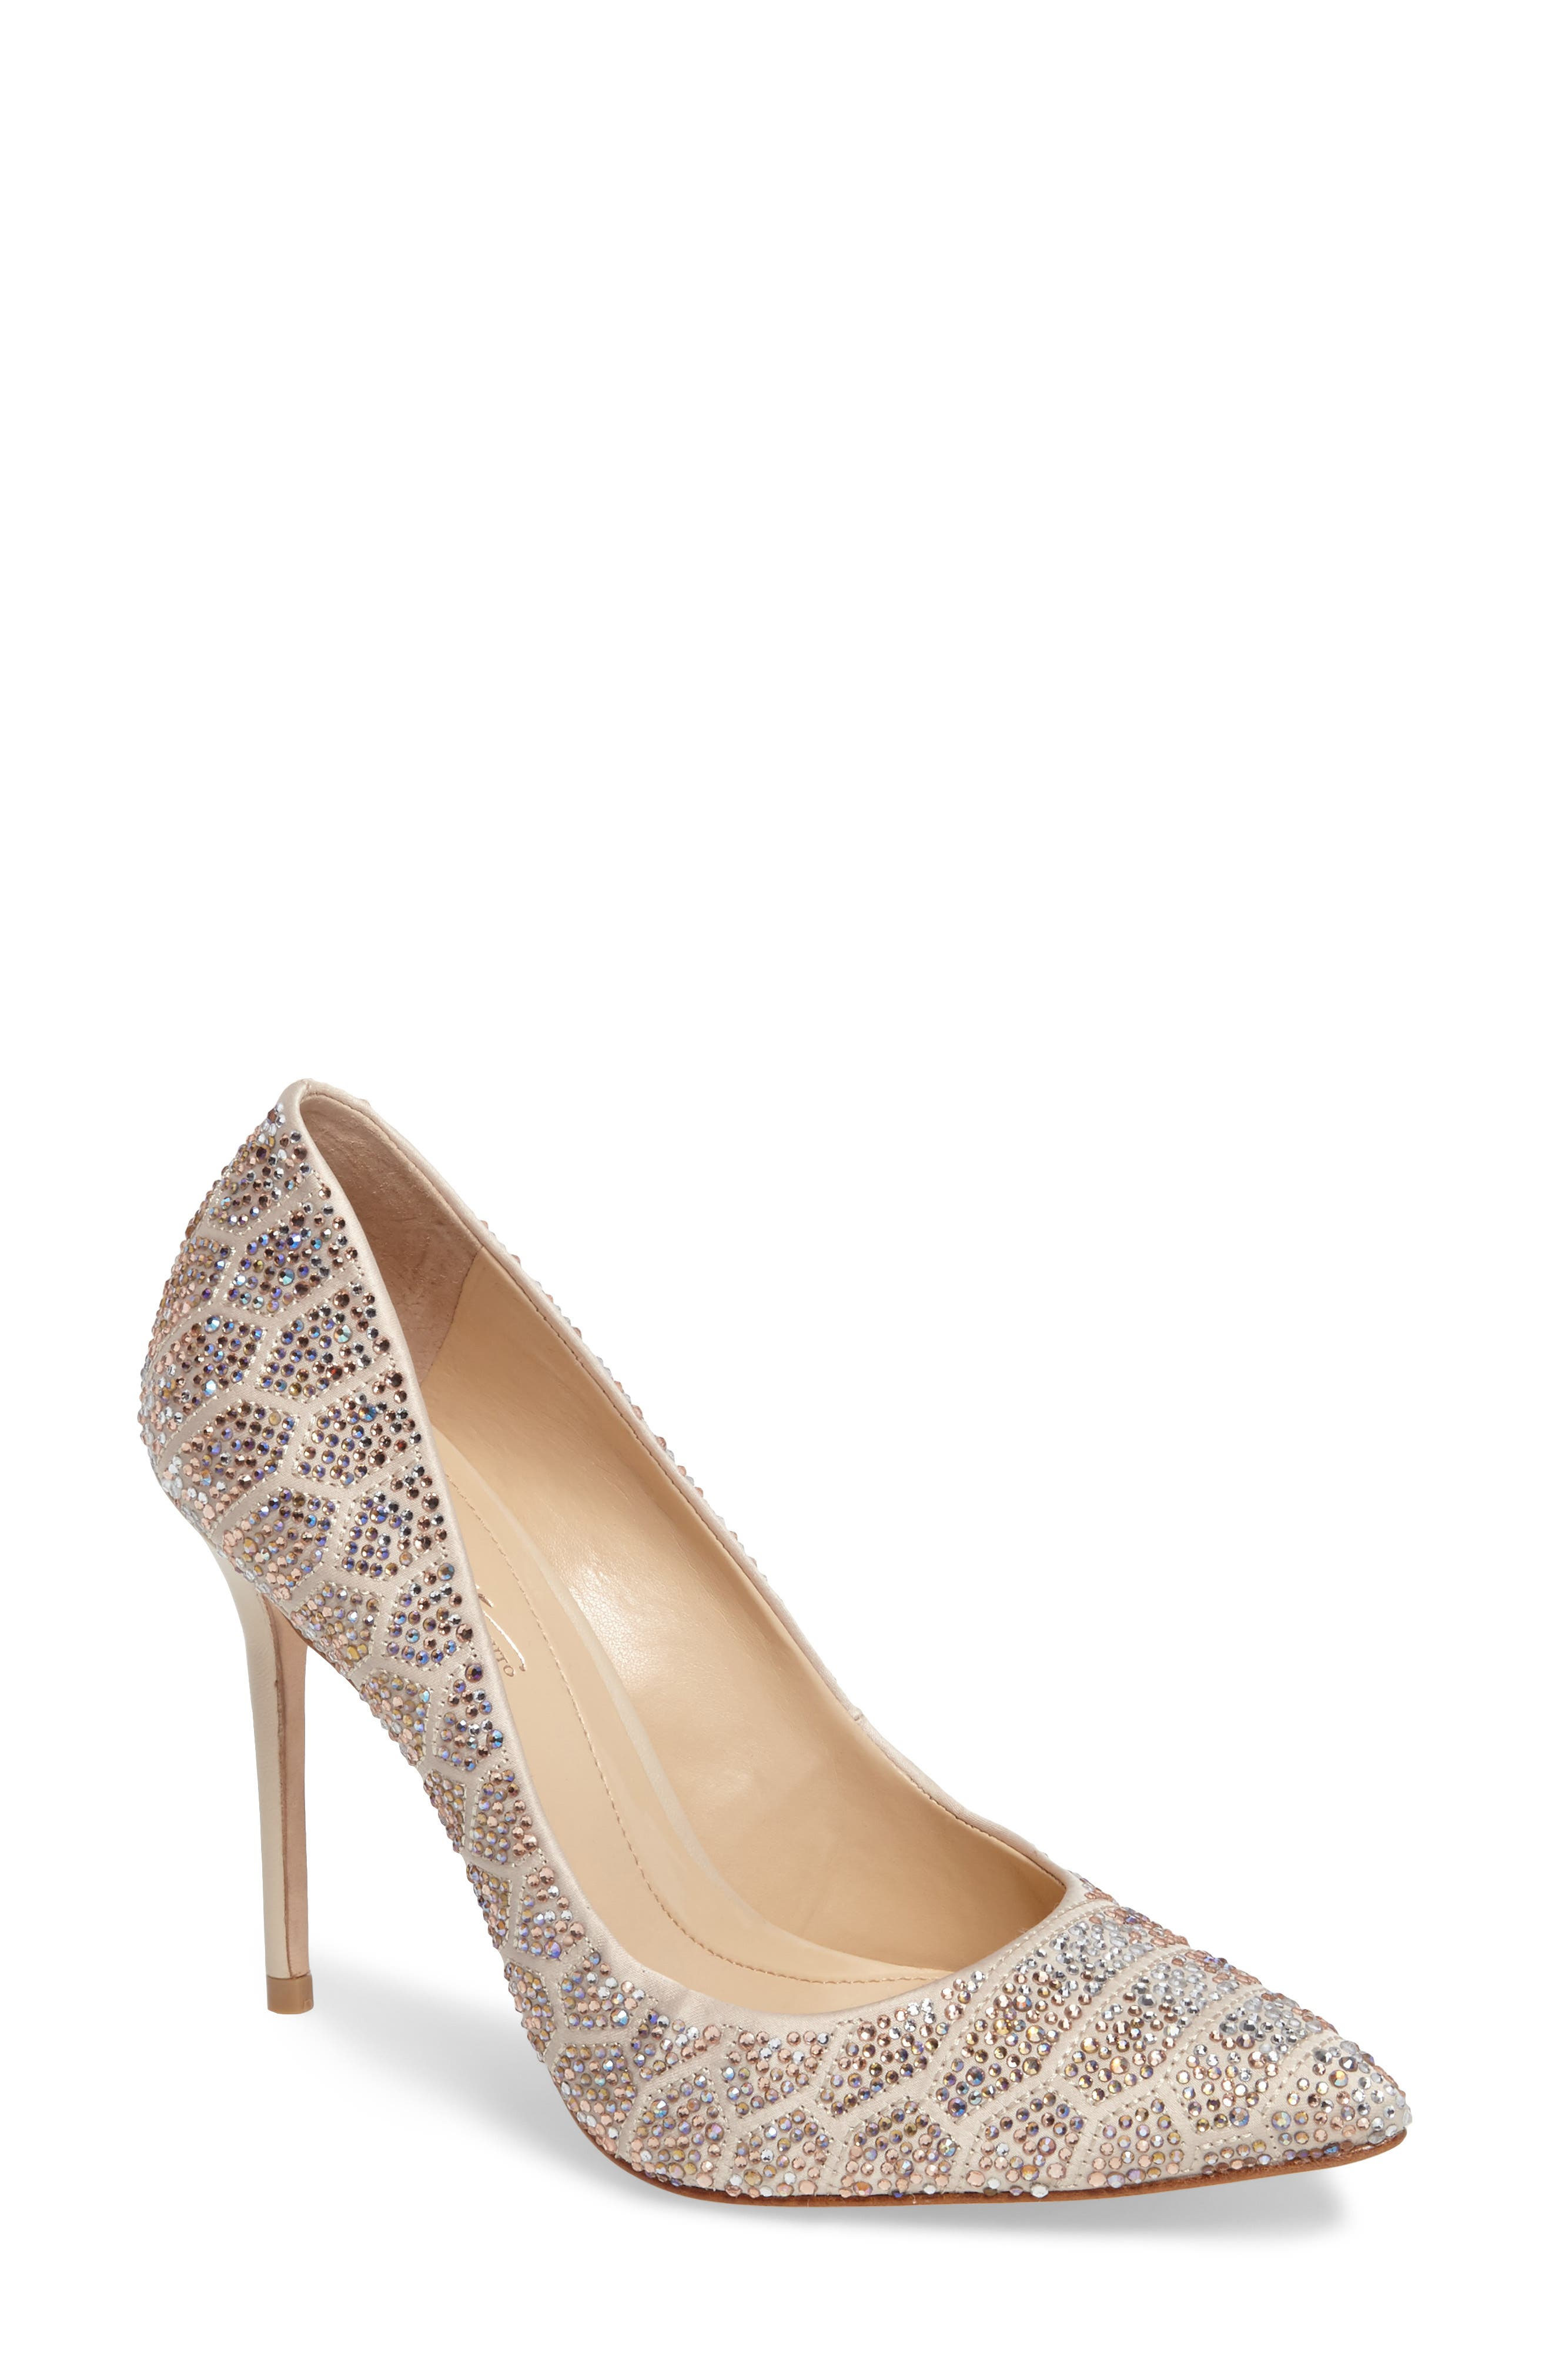 Imagine Vince Camuto 'Olivier' Pointy Toe Pump,                             Main thumbnail 1, color,                             250